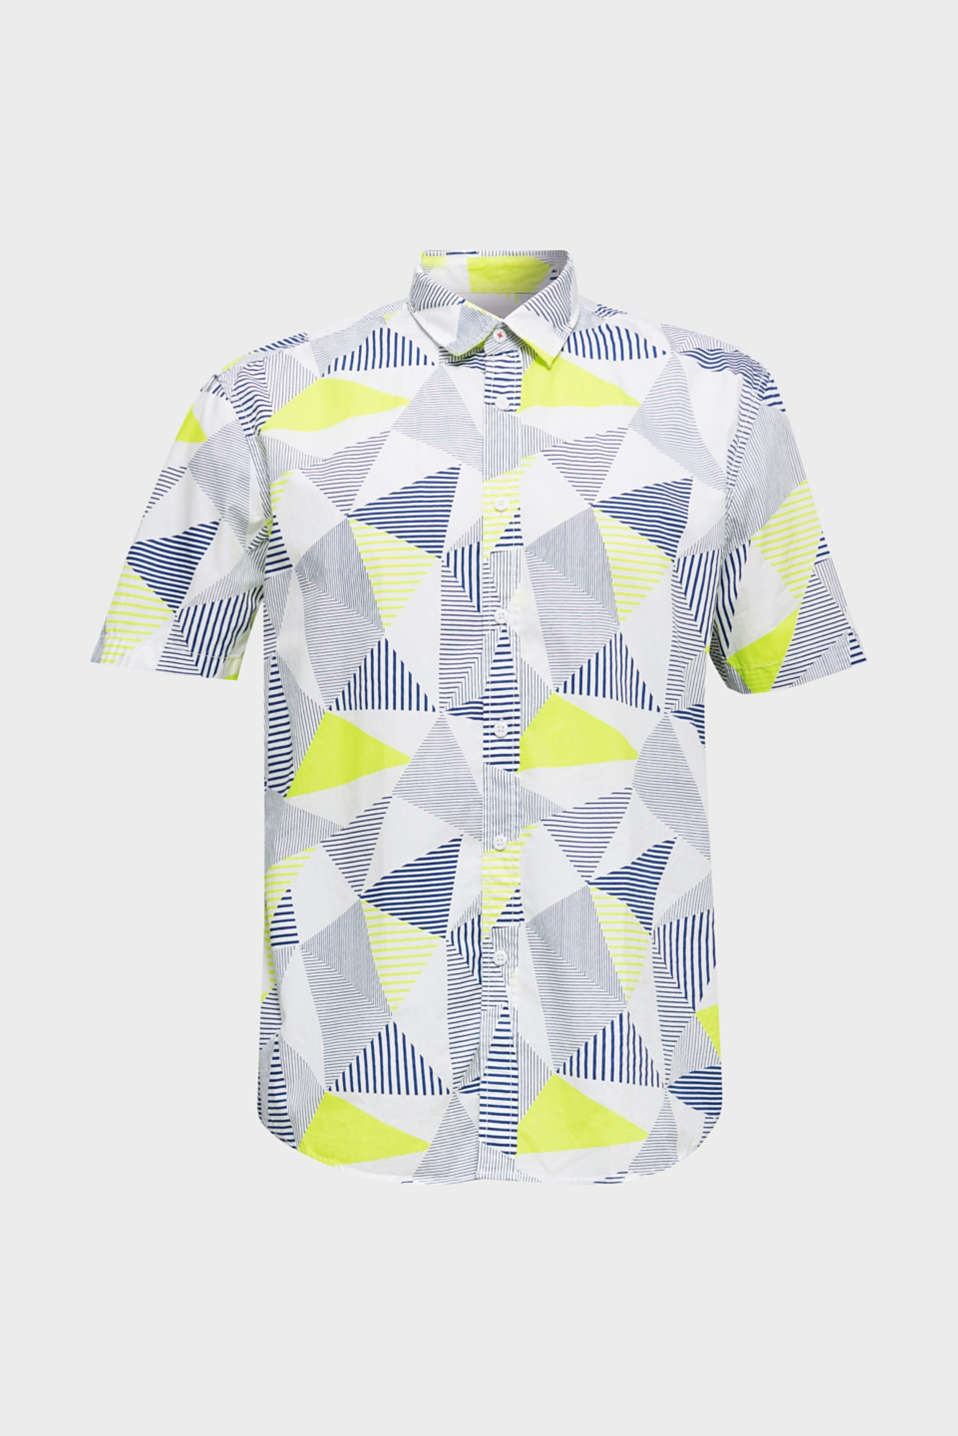 Shirt with a geometric print, 100% cotton, WHITE 4, detail image number 7